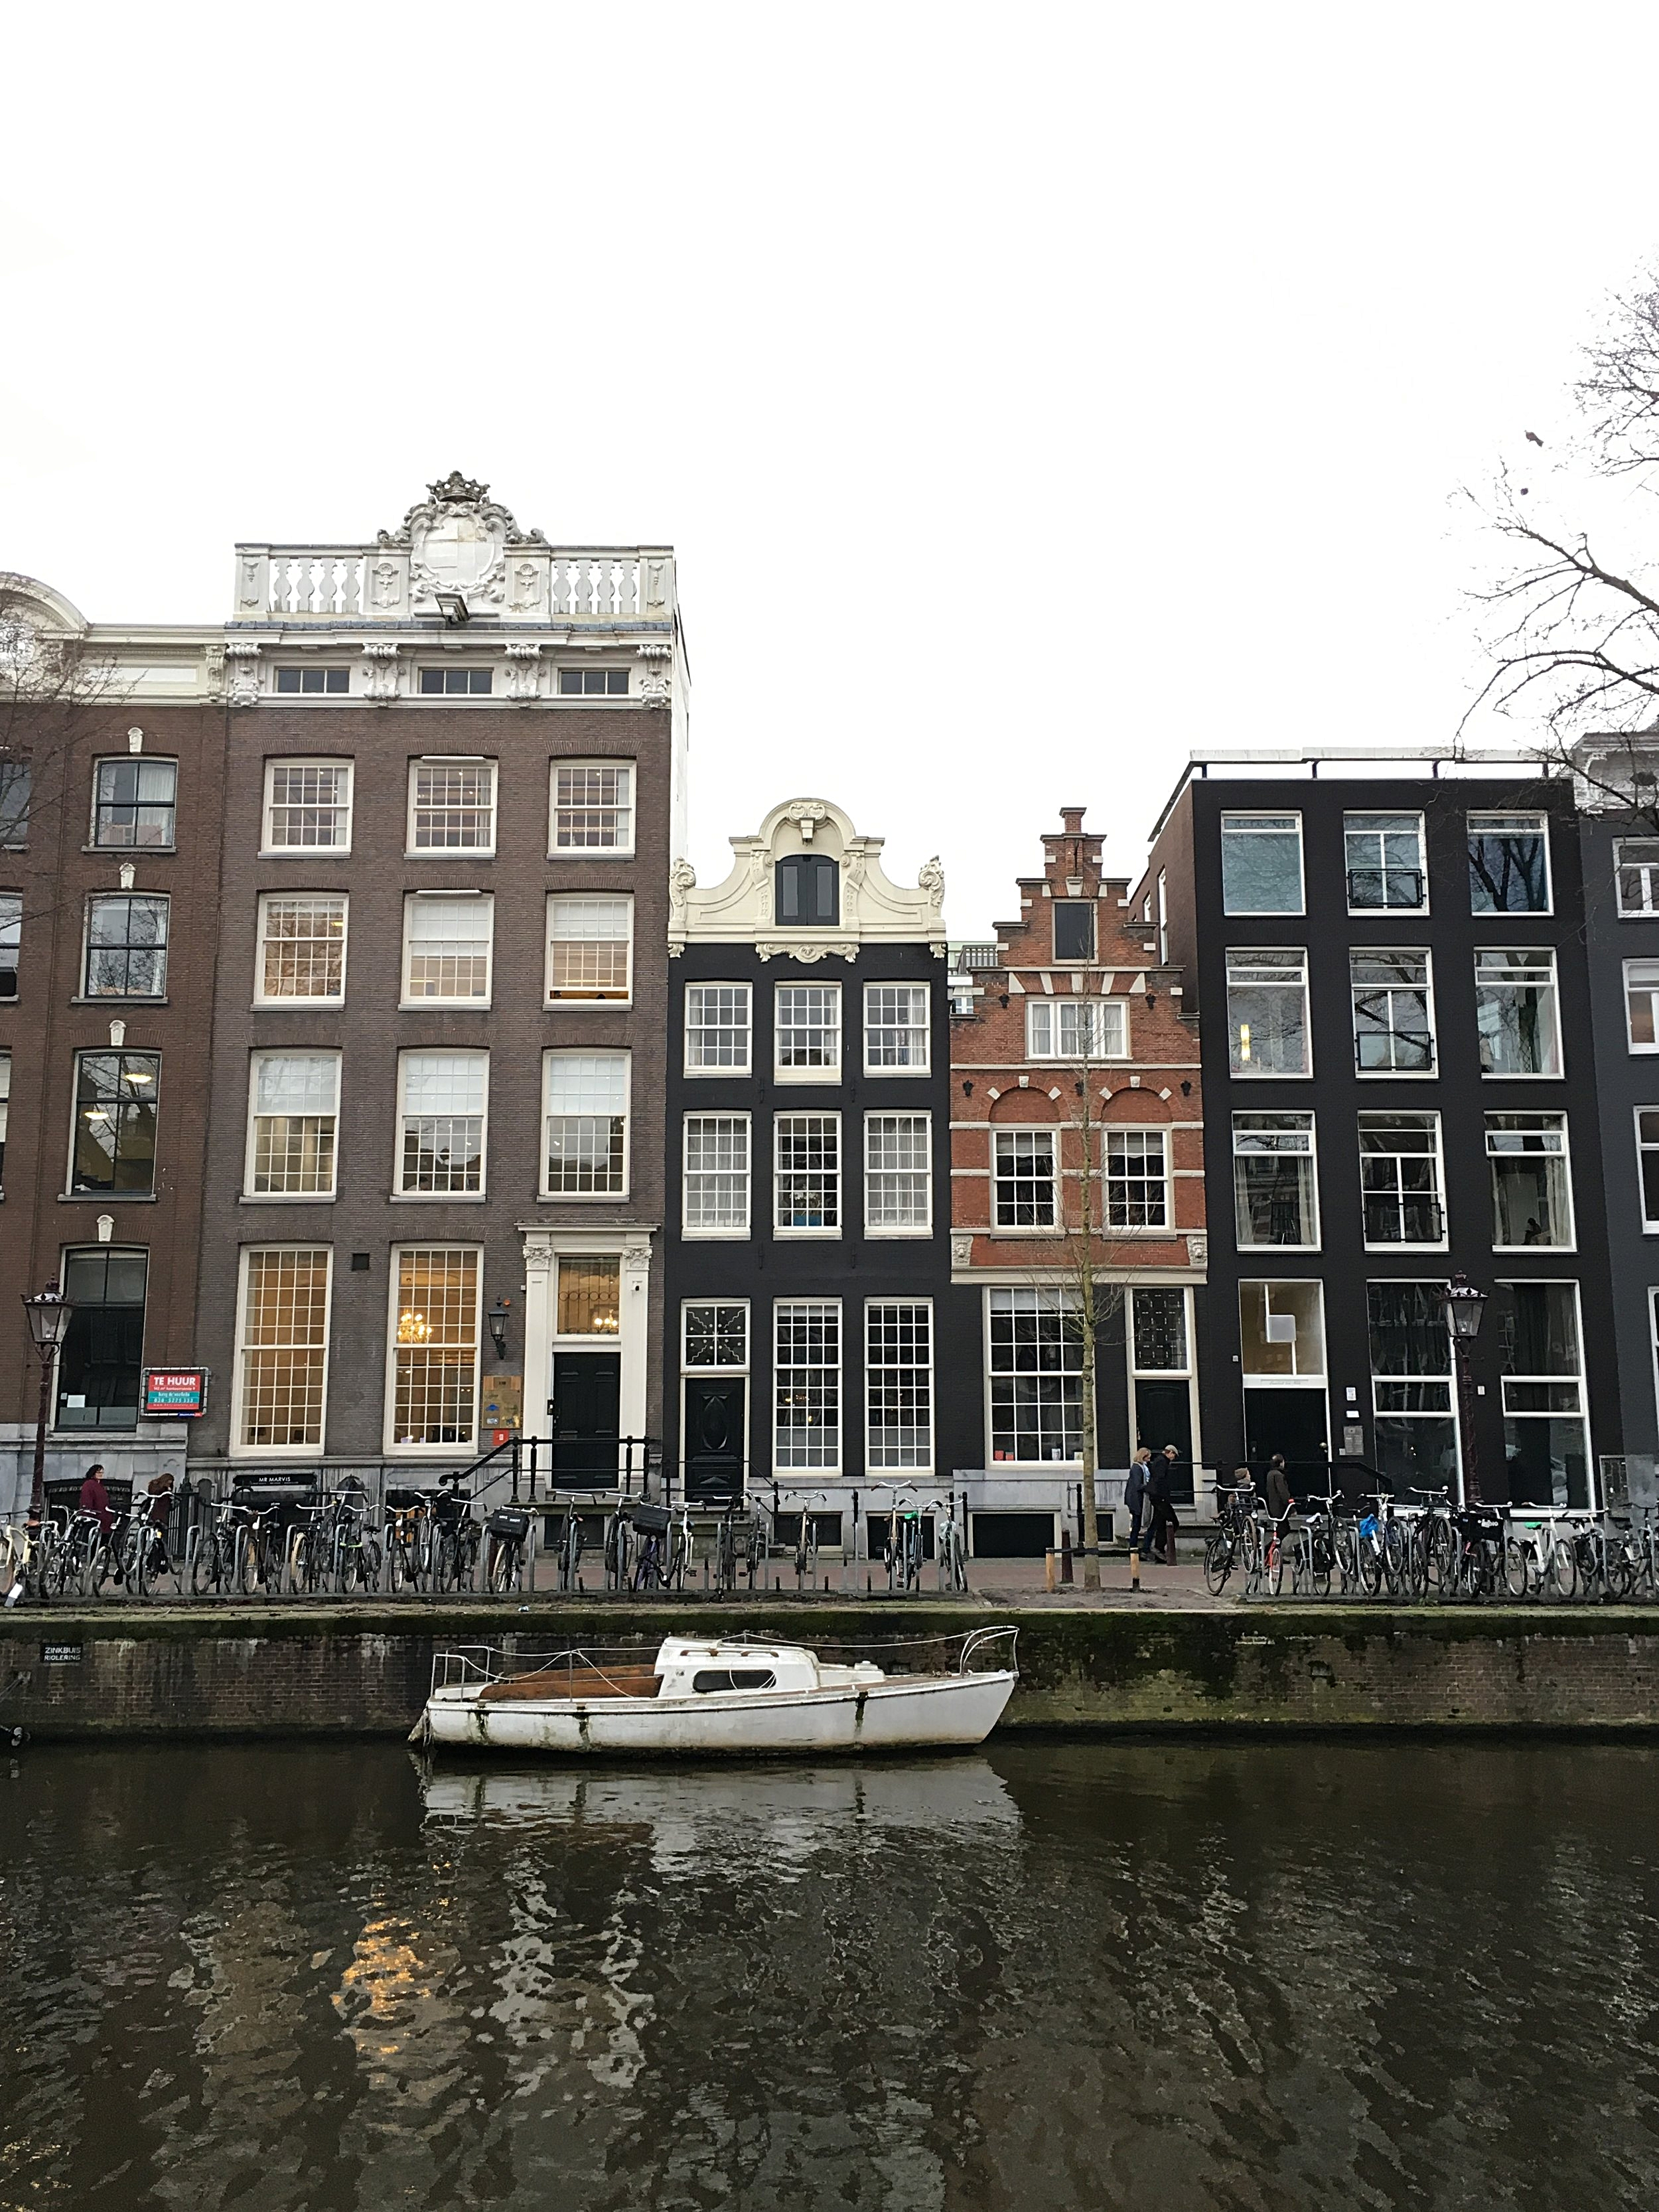 ~classic Amsterdam canal houses - even pretty in the rain.